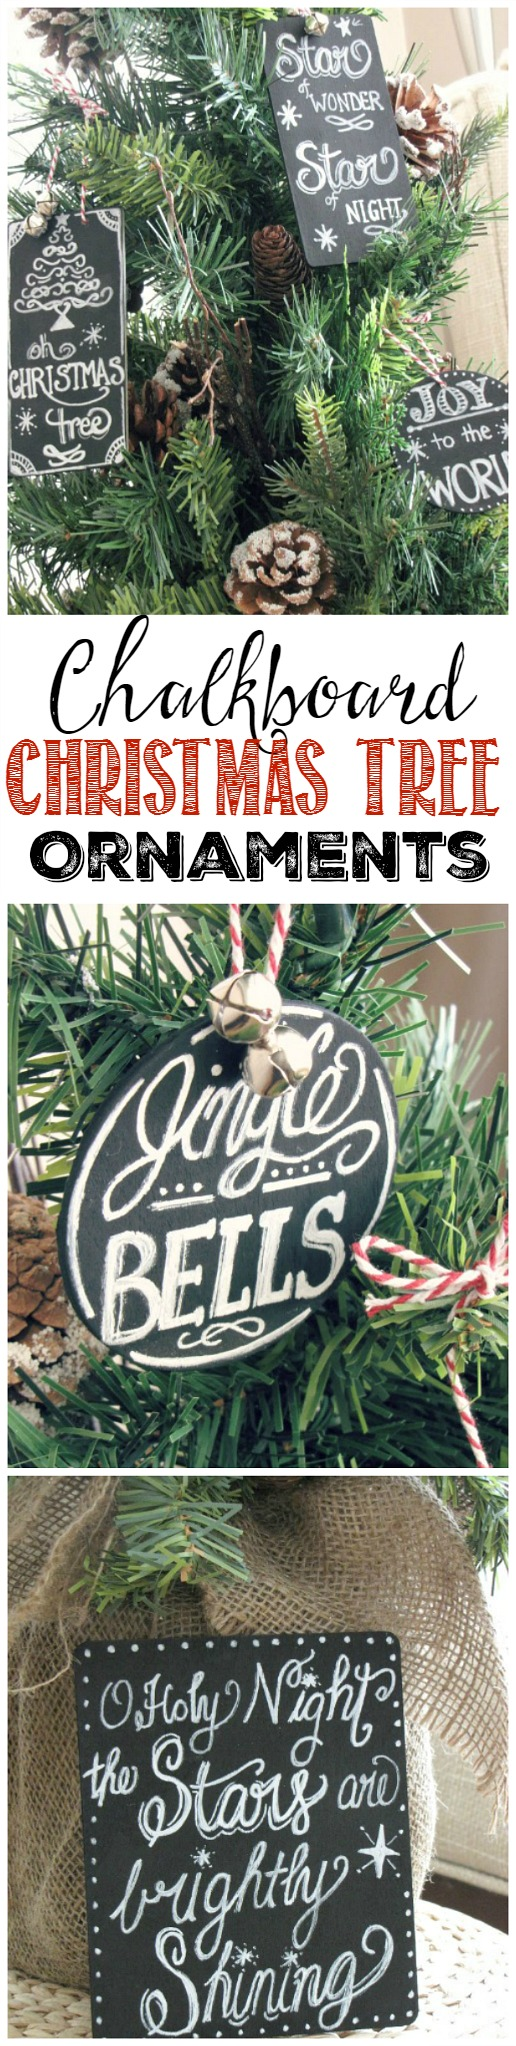 Chalkboard christmas tree ornaments clean scentsible